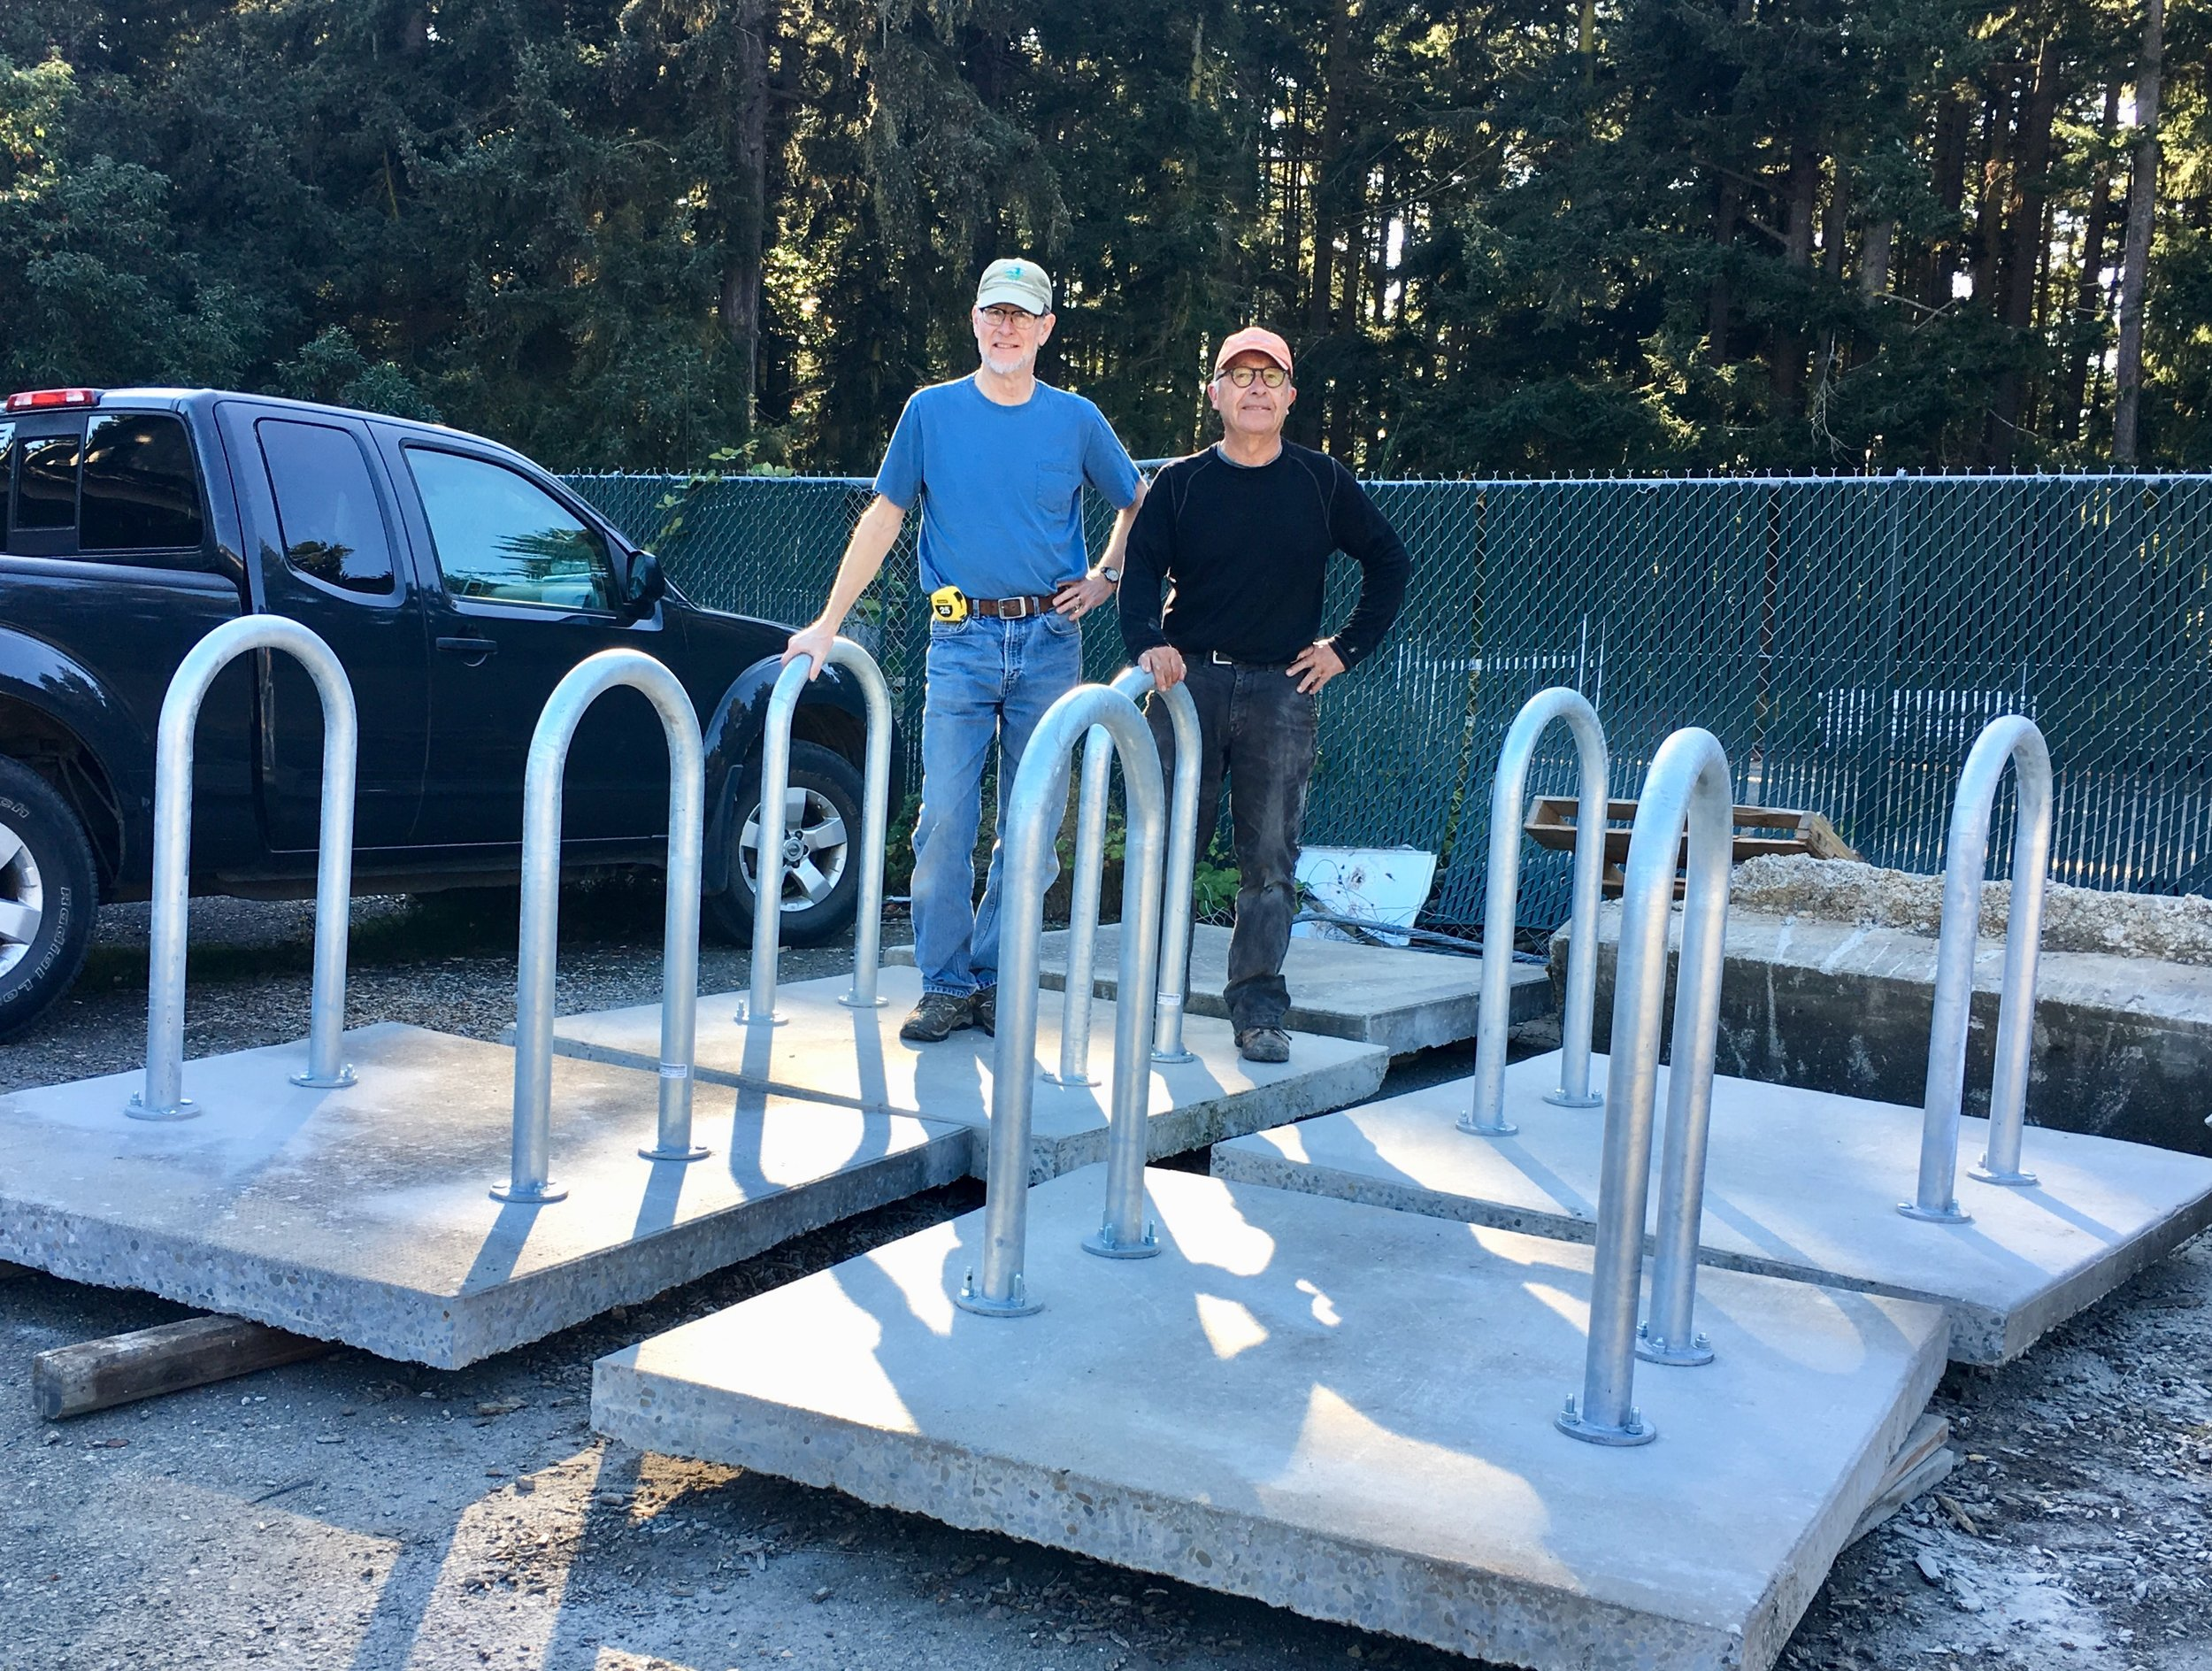 New bicycle racks ready to be installed